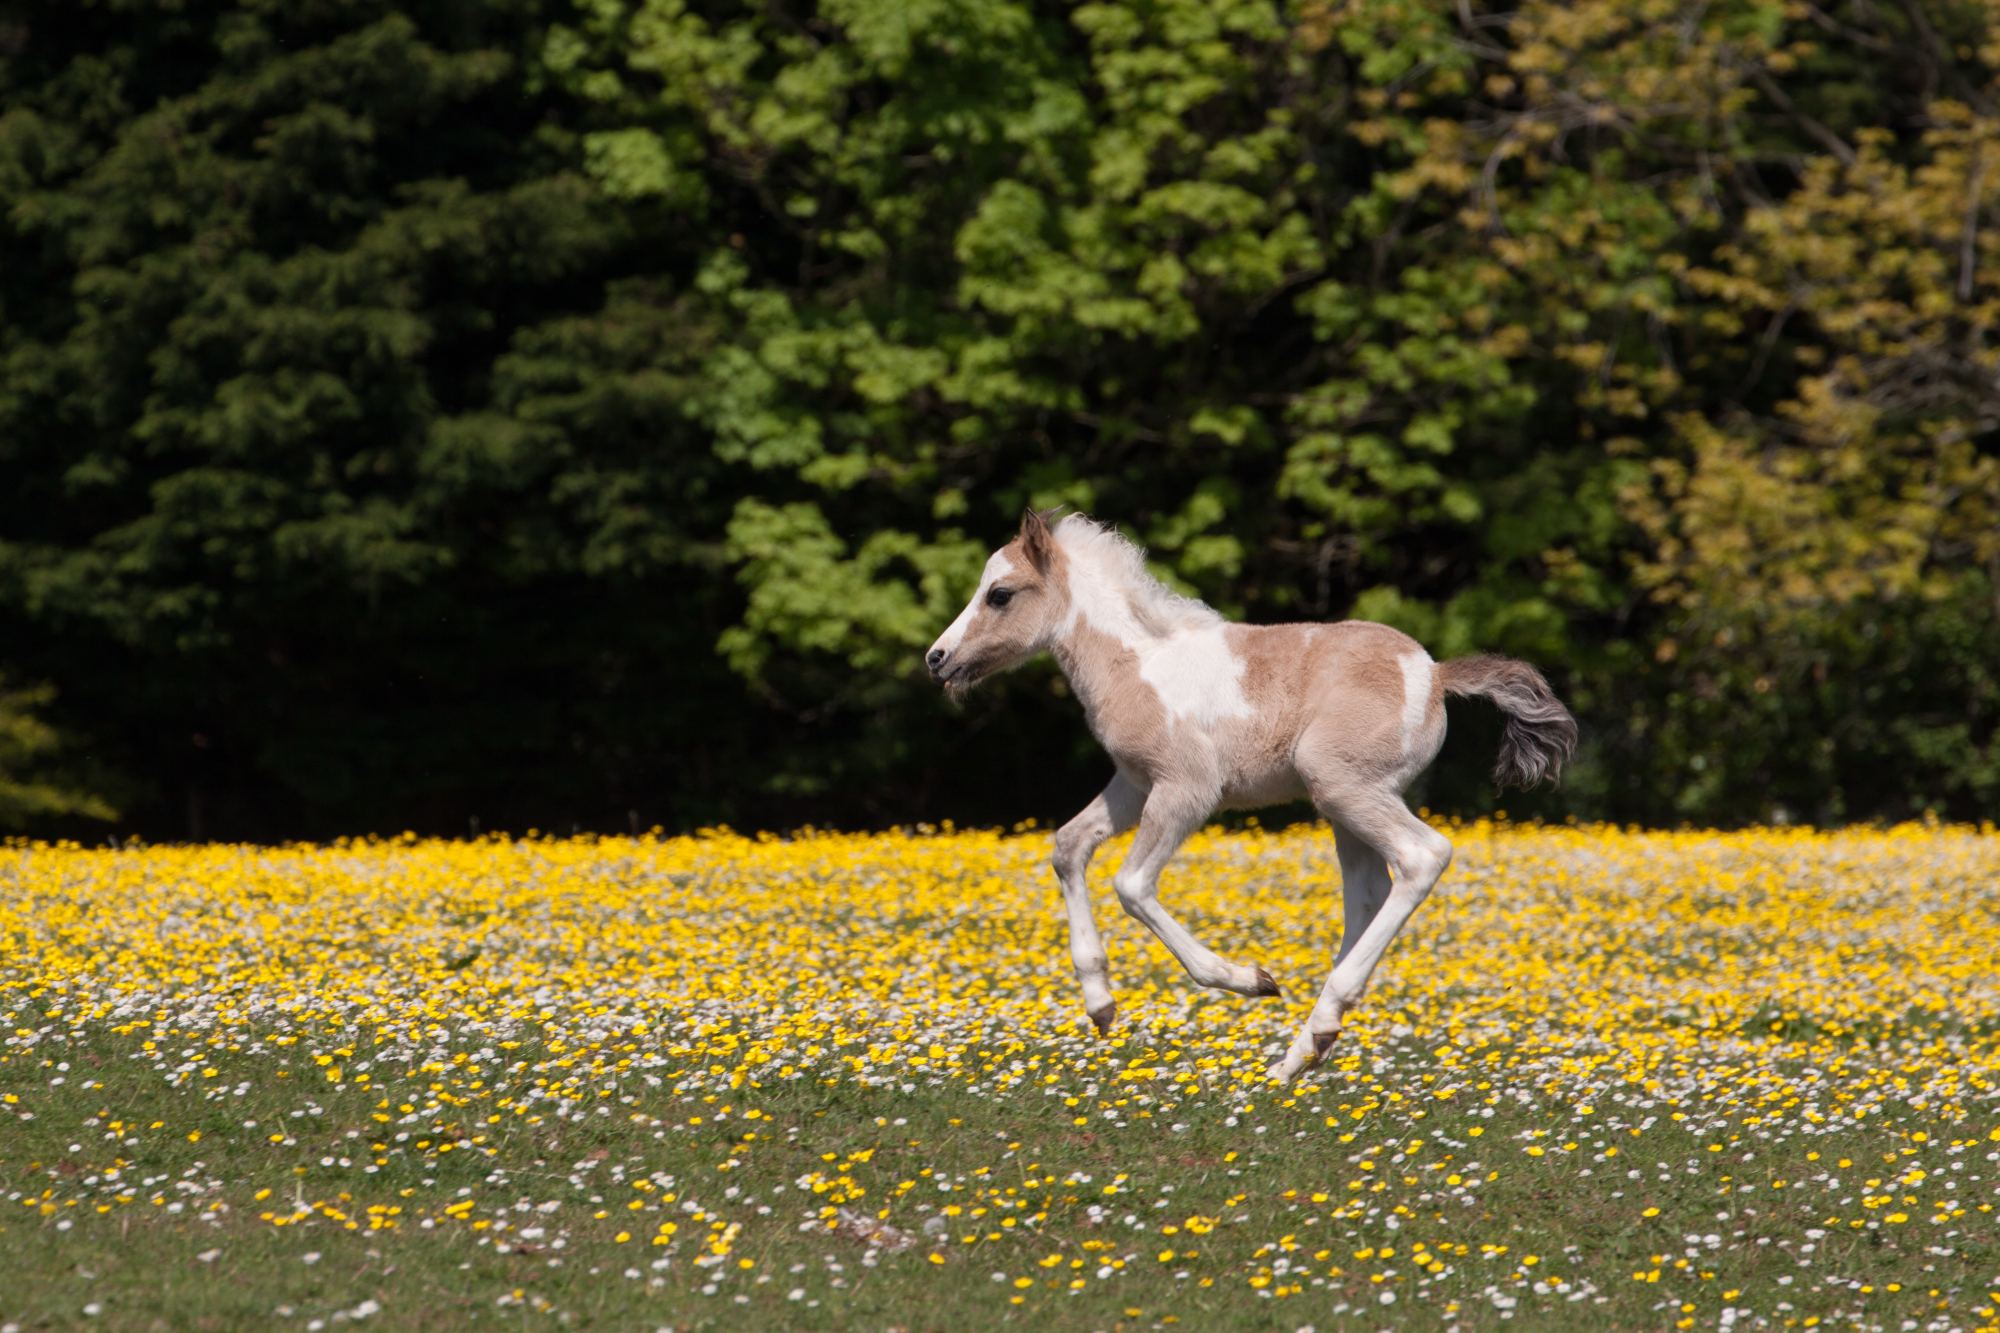 Foal-Lio-Galloping-Field-Buttercups